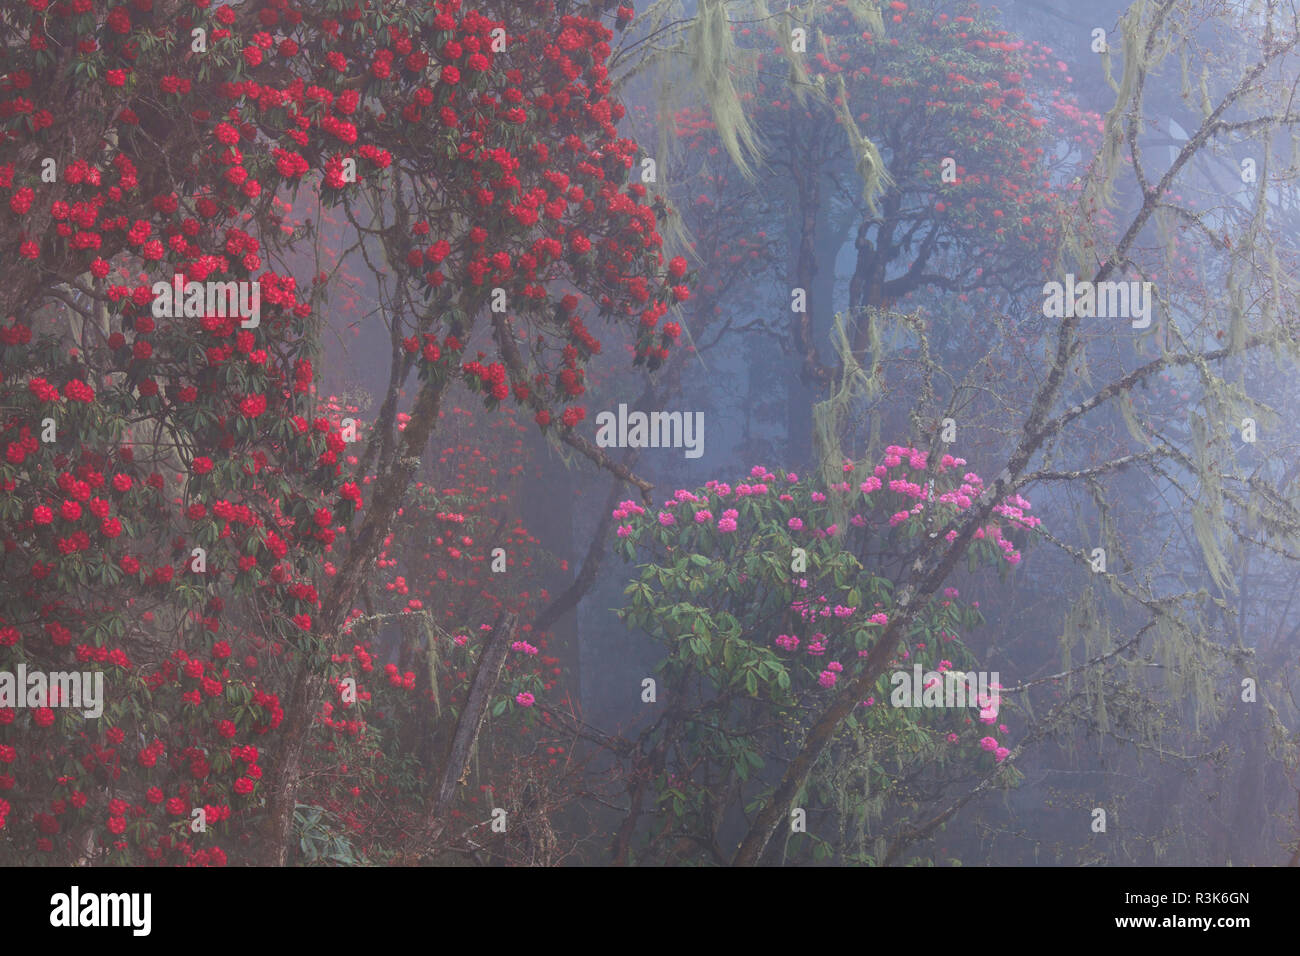 Rhododendron in bloom in the forests of Paro Valley, Bhutan Stock Photo